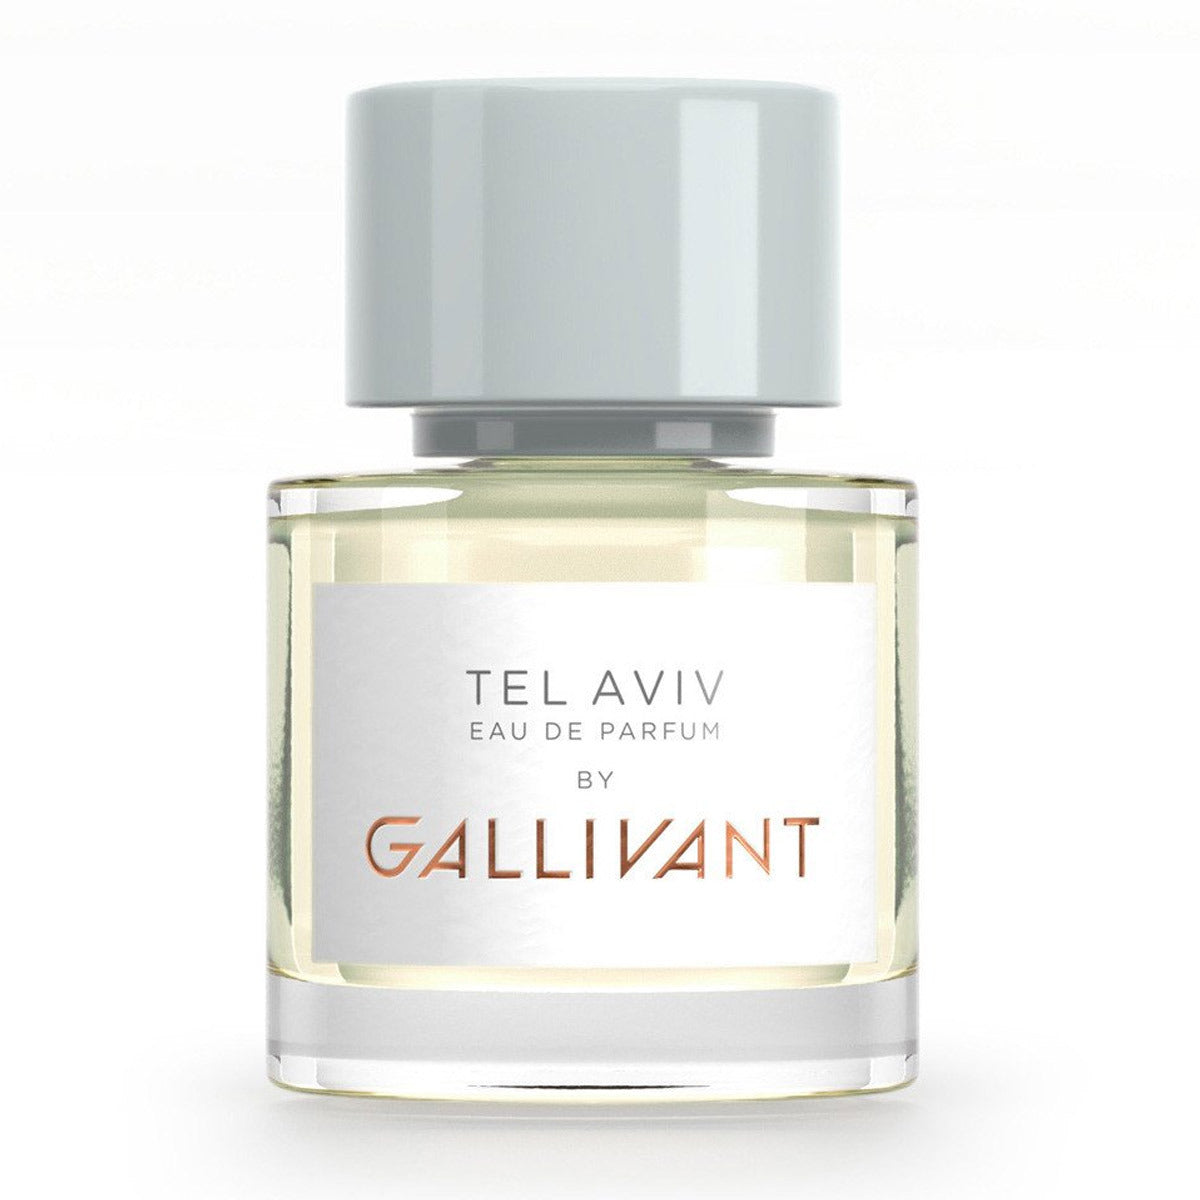 Niche Fragrance for Summer | GALLIVANT Tel Aviv Eau de Parfum